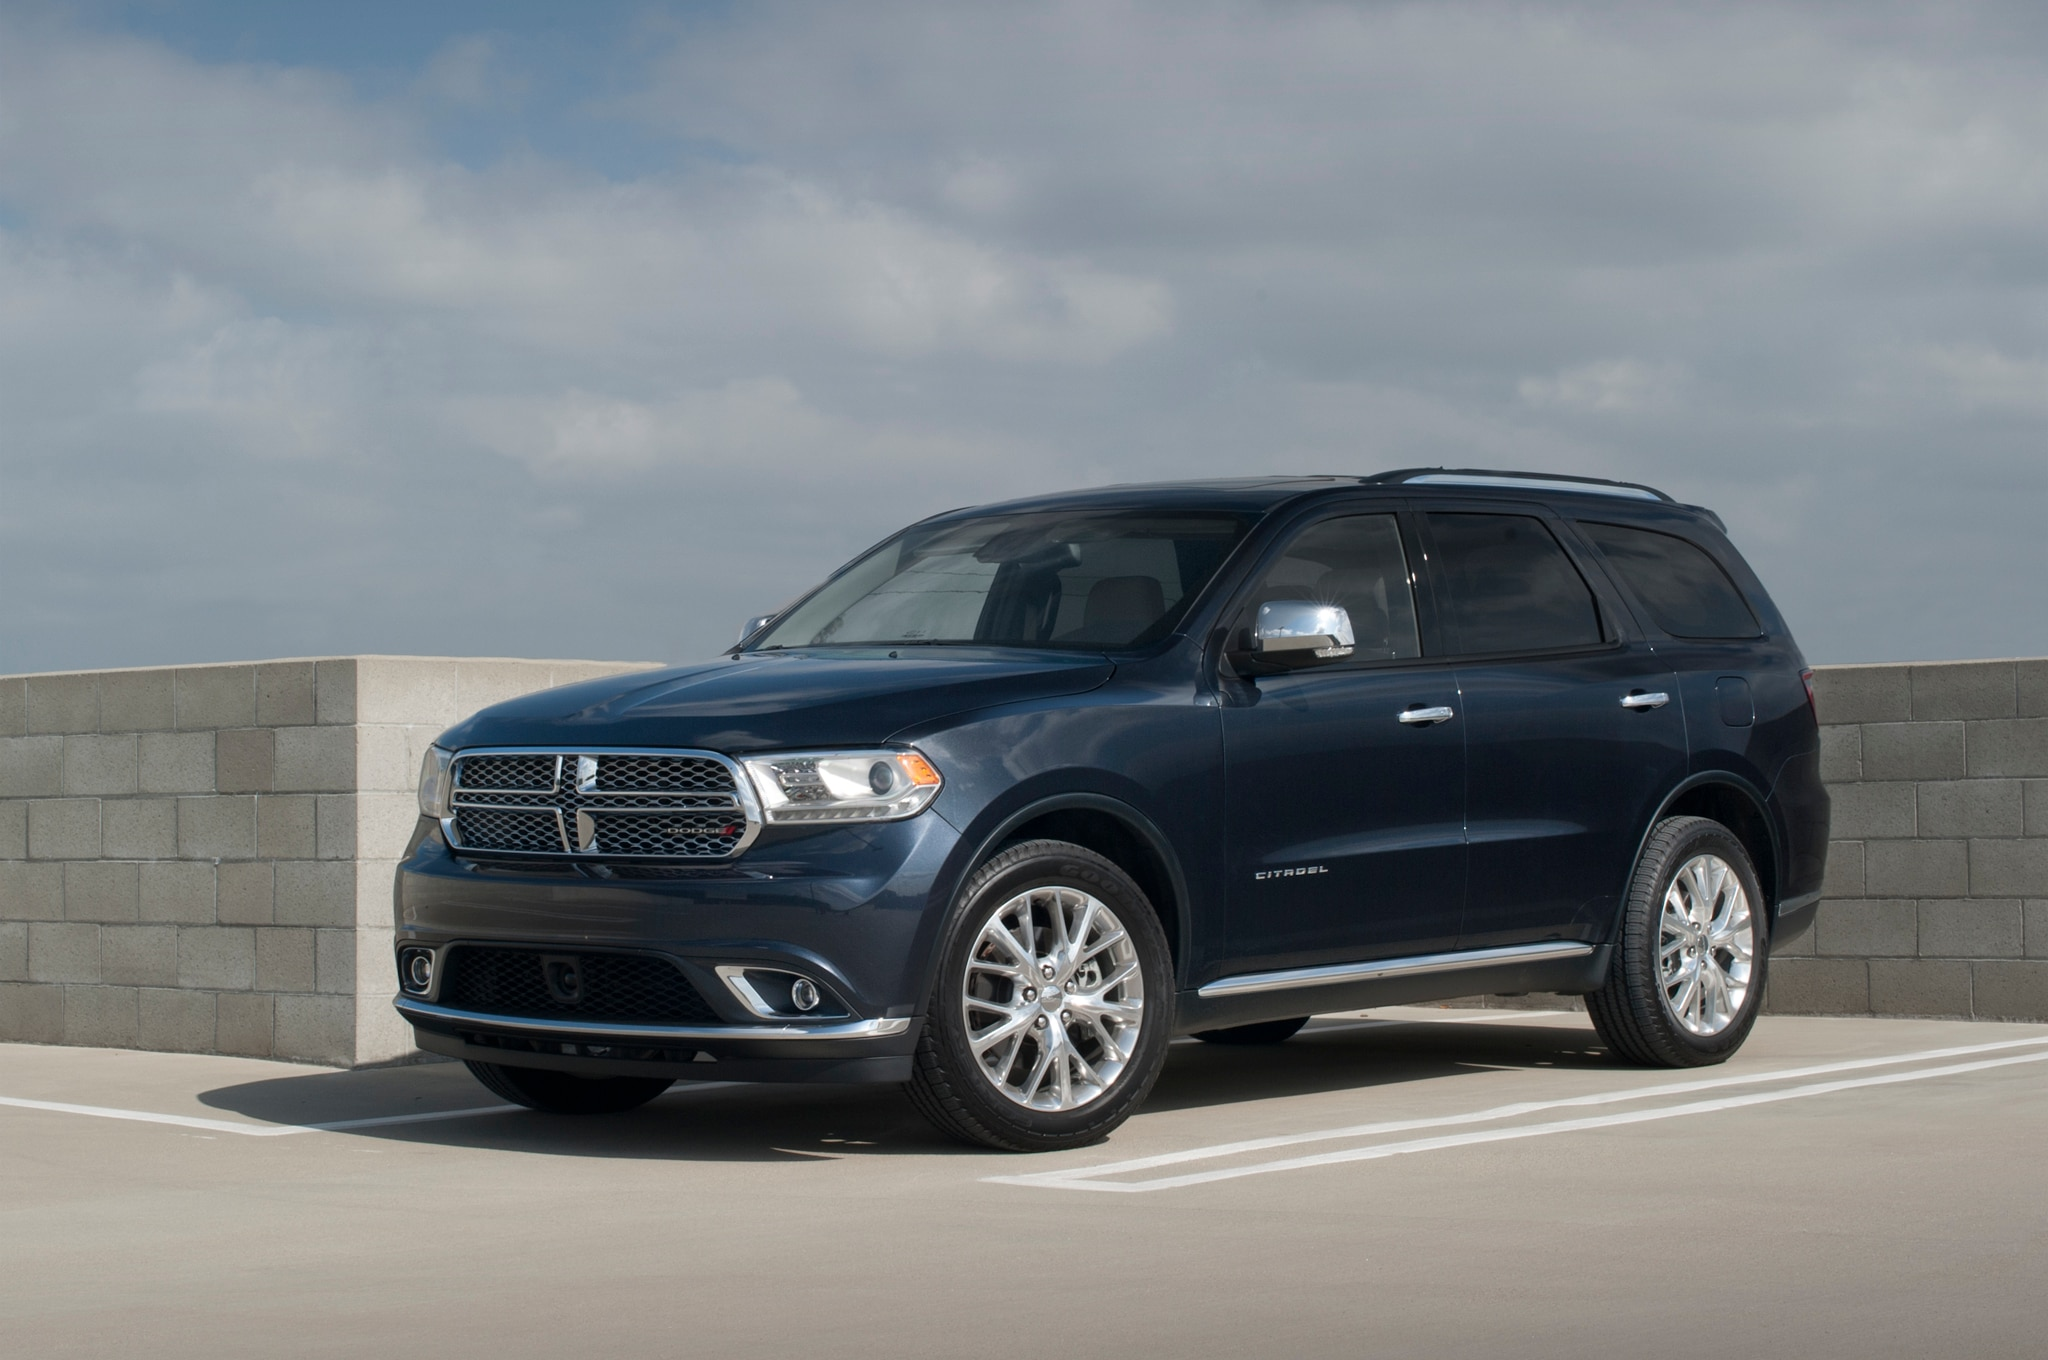 2014 dodge durango first drive automobile magazine. Black Bedroom Furniture Sets. Home Design Ideas